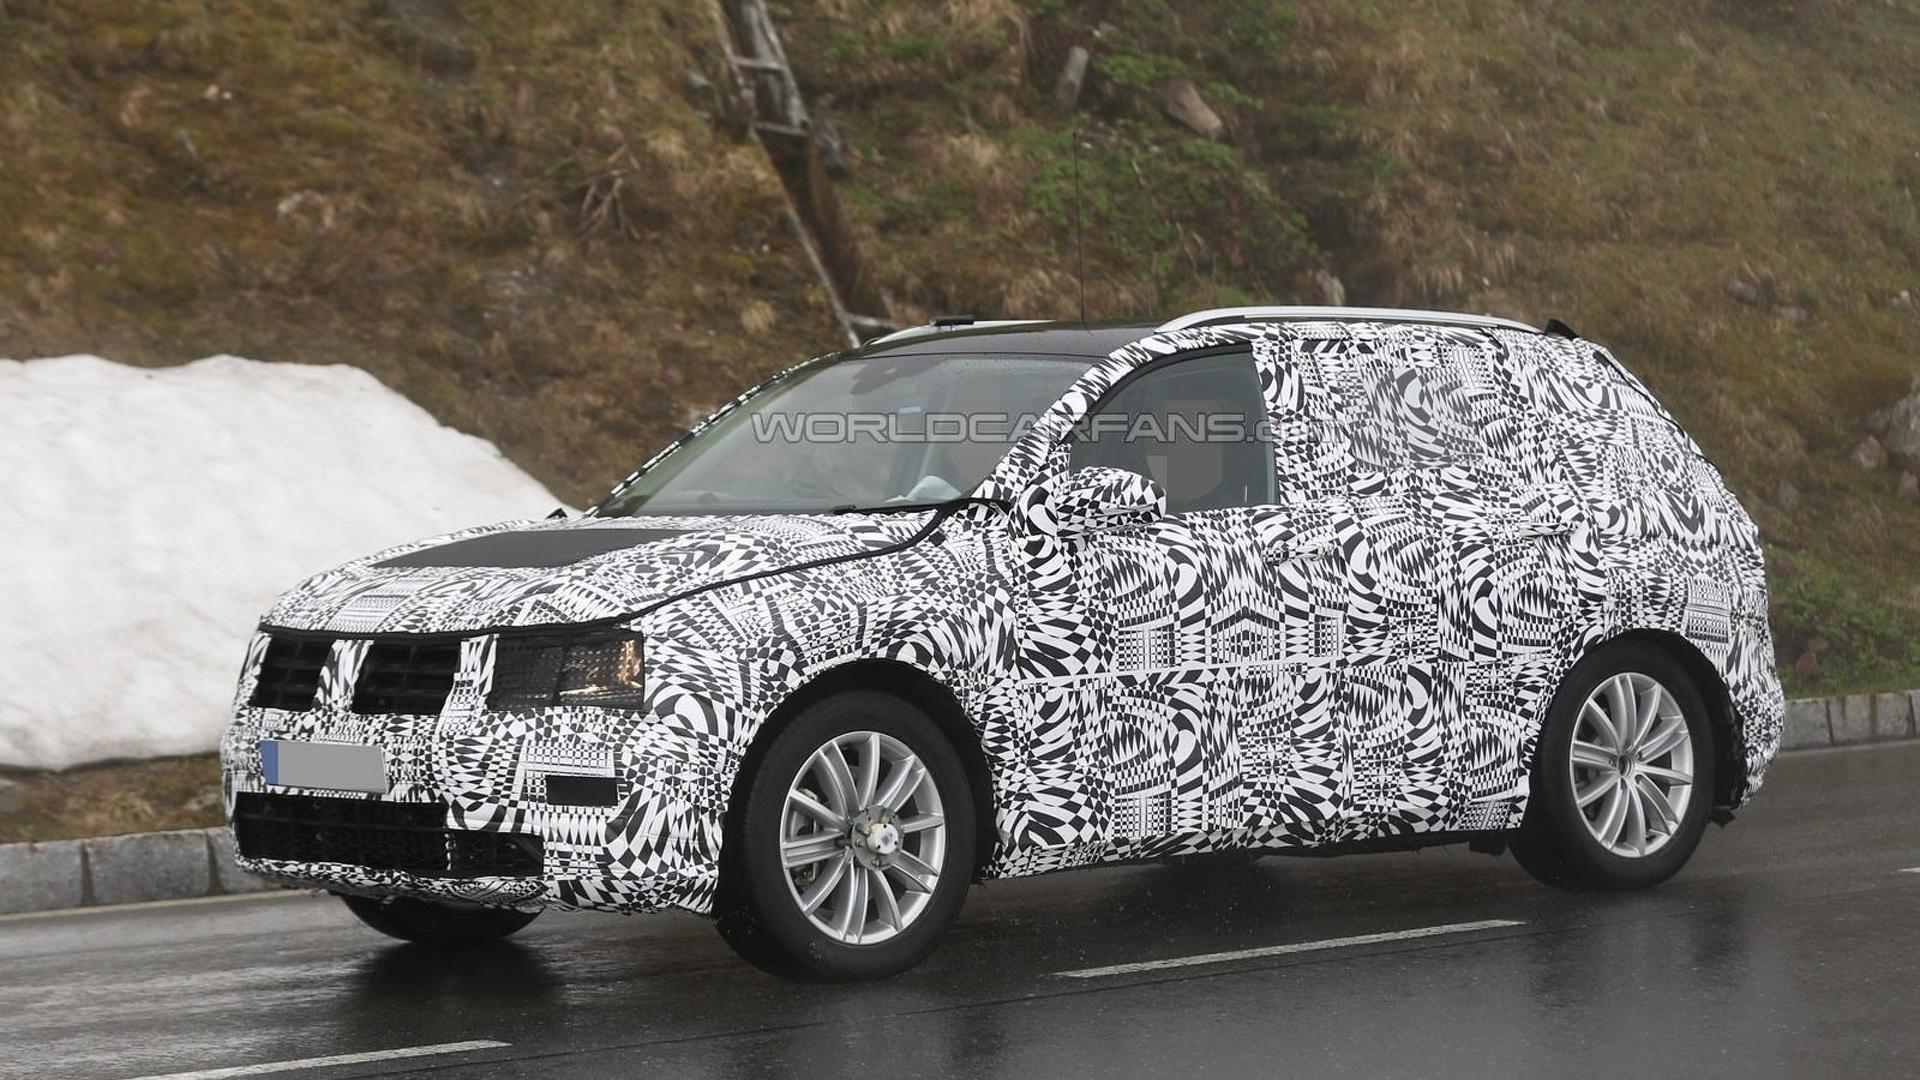 2016 Volkswagen Tiguan spied with production body for the first time (37 photos)